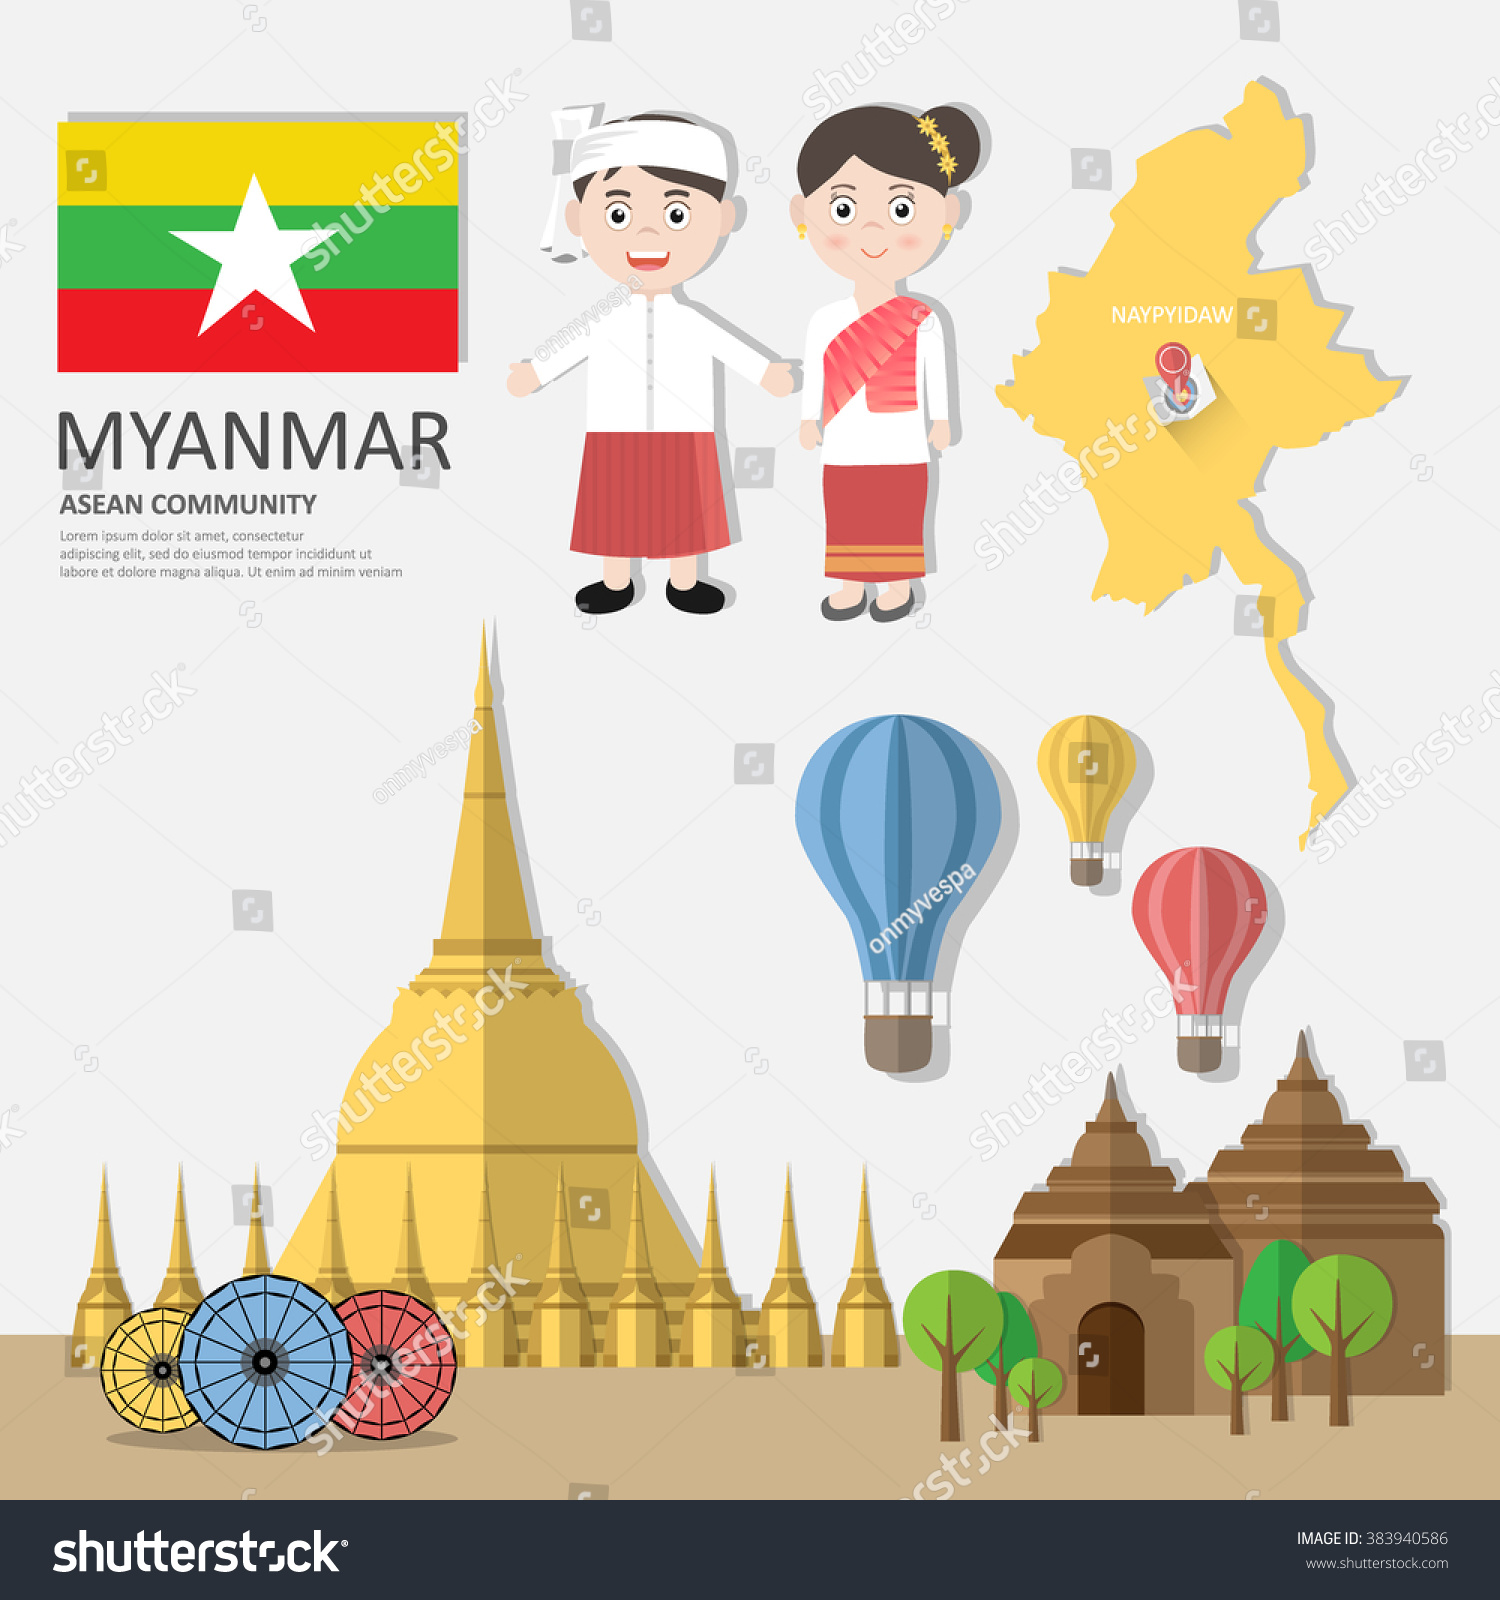 myanmar and asean The first global investors summit in guwahati will be held in february assam has geostrategic advantage and now she is considered india's expressway to asea.